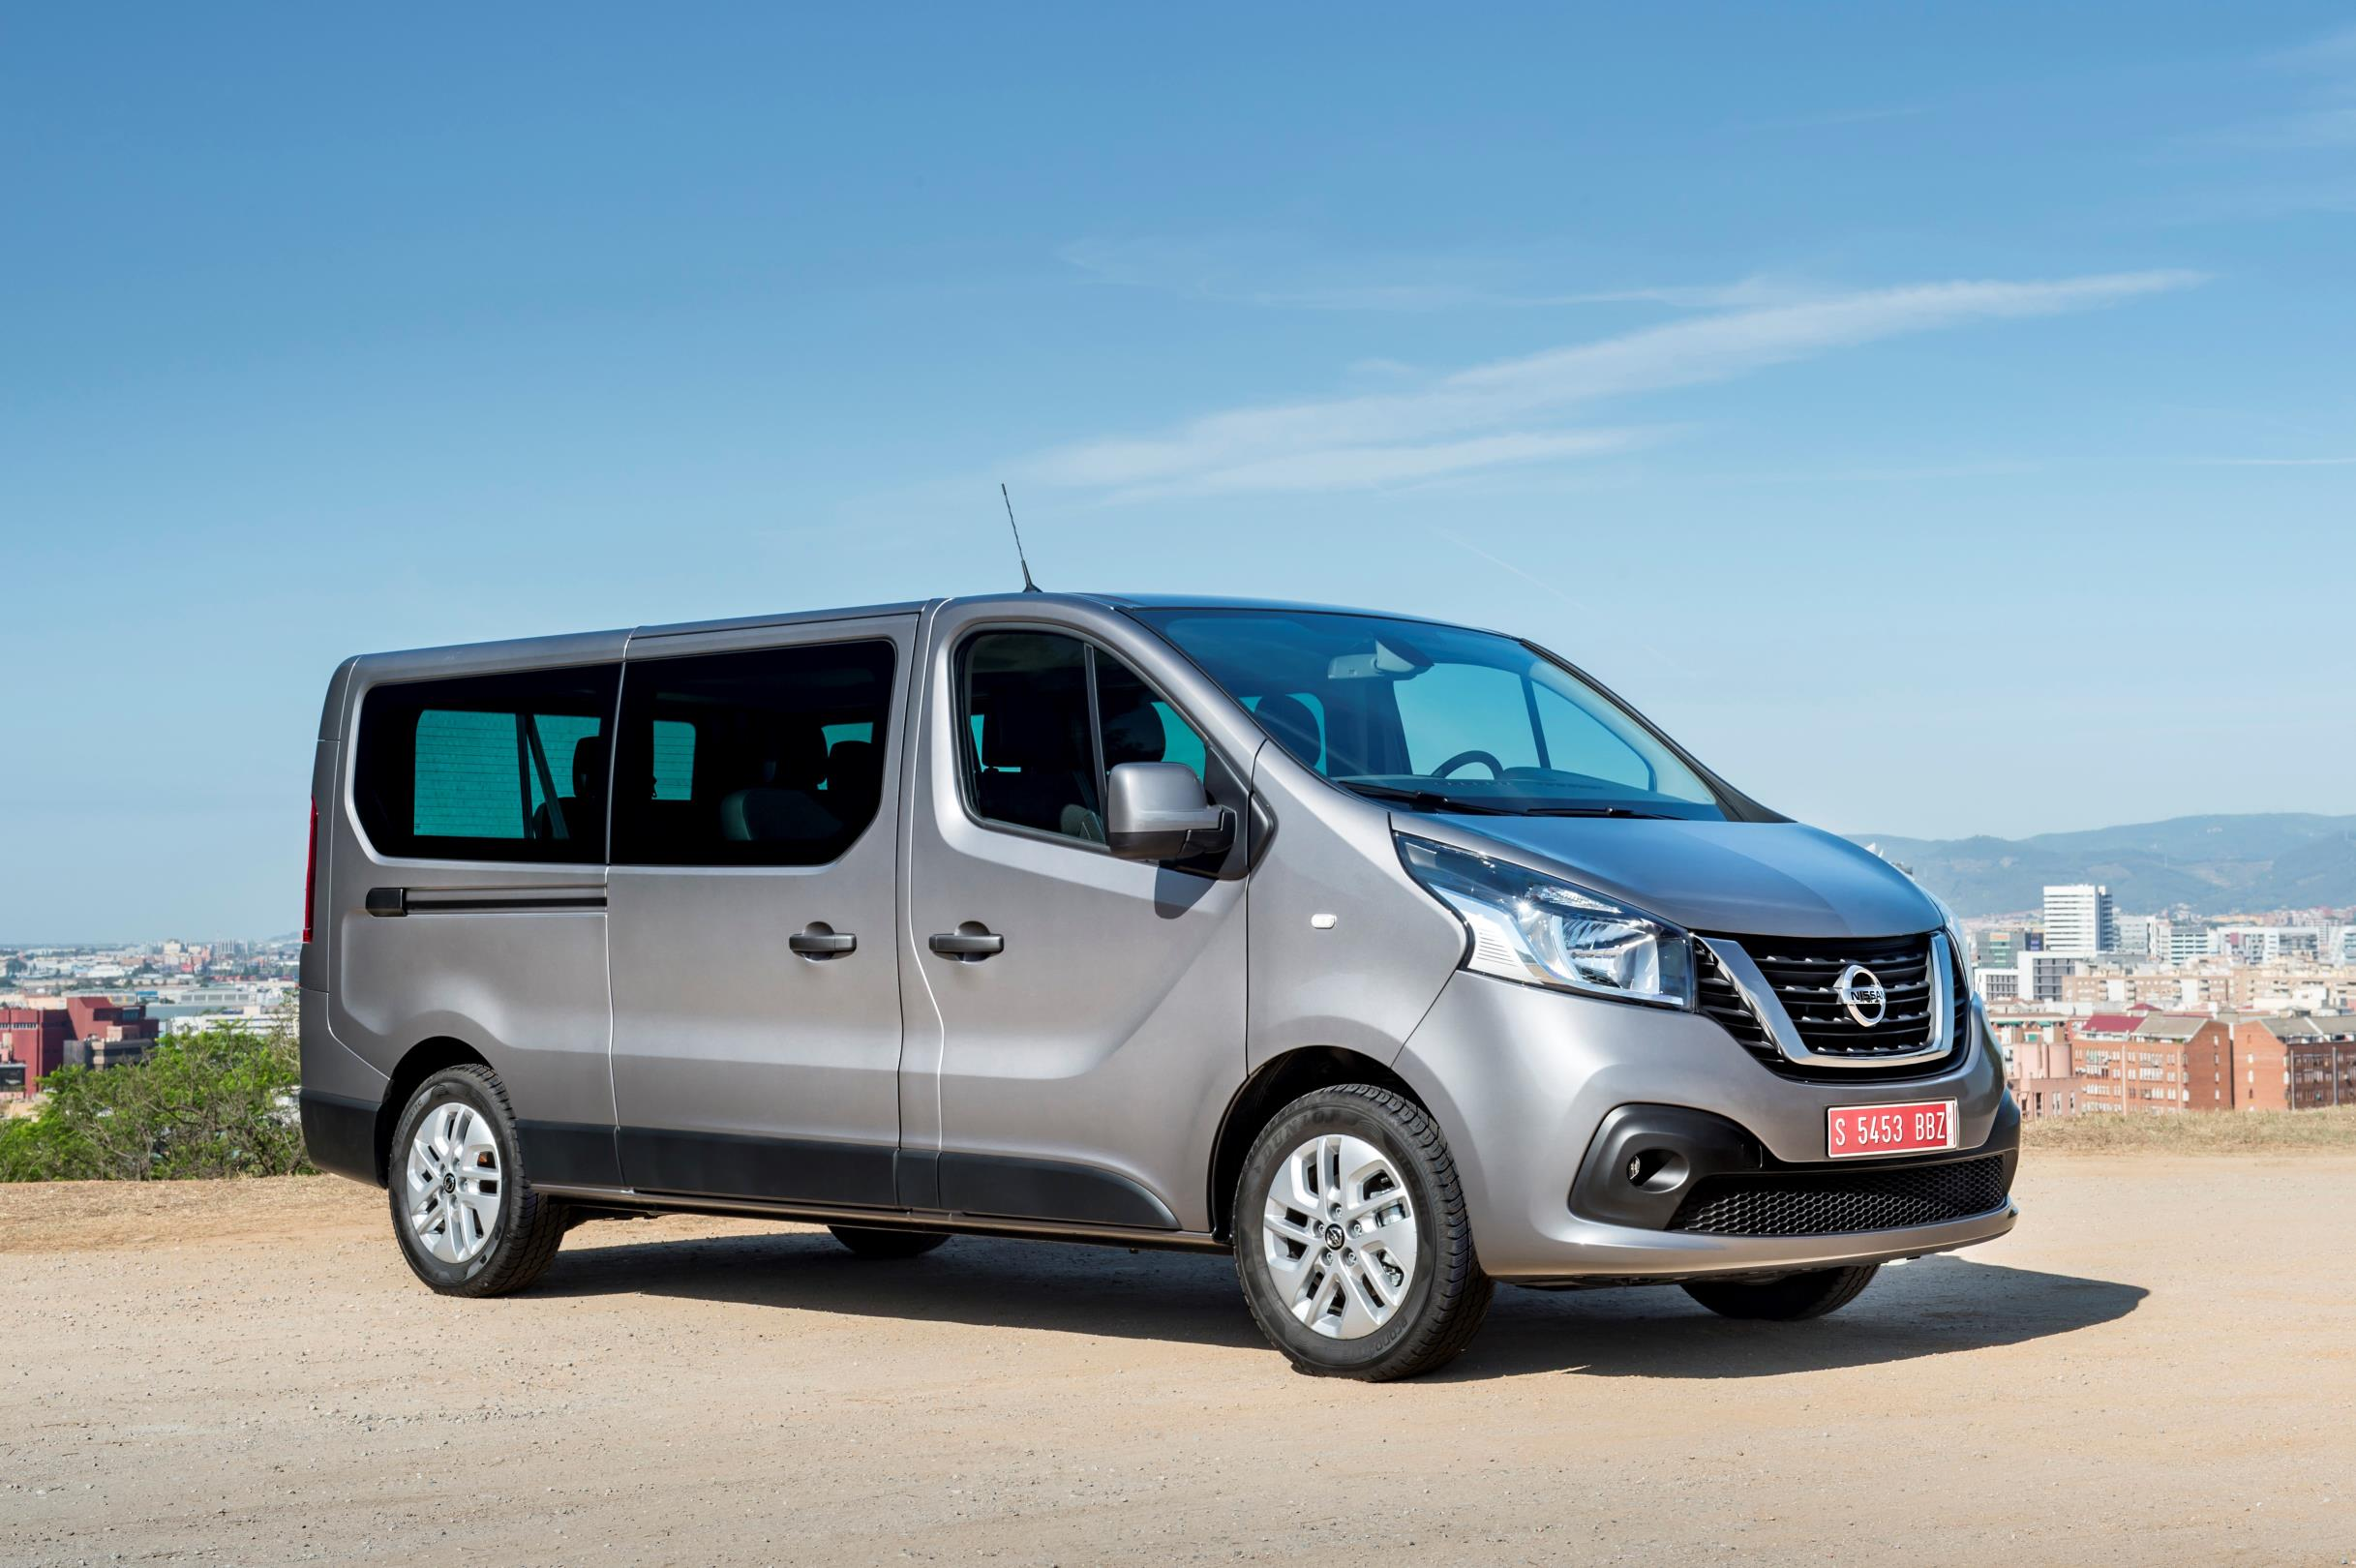 2017 Nissan Nv300 Replaces Primastar Van Autoevolution